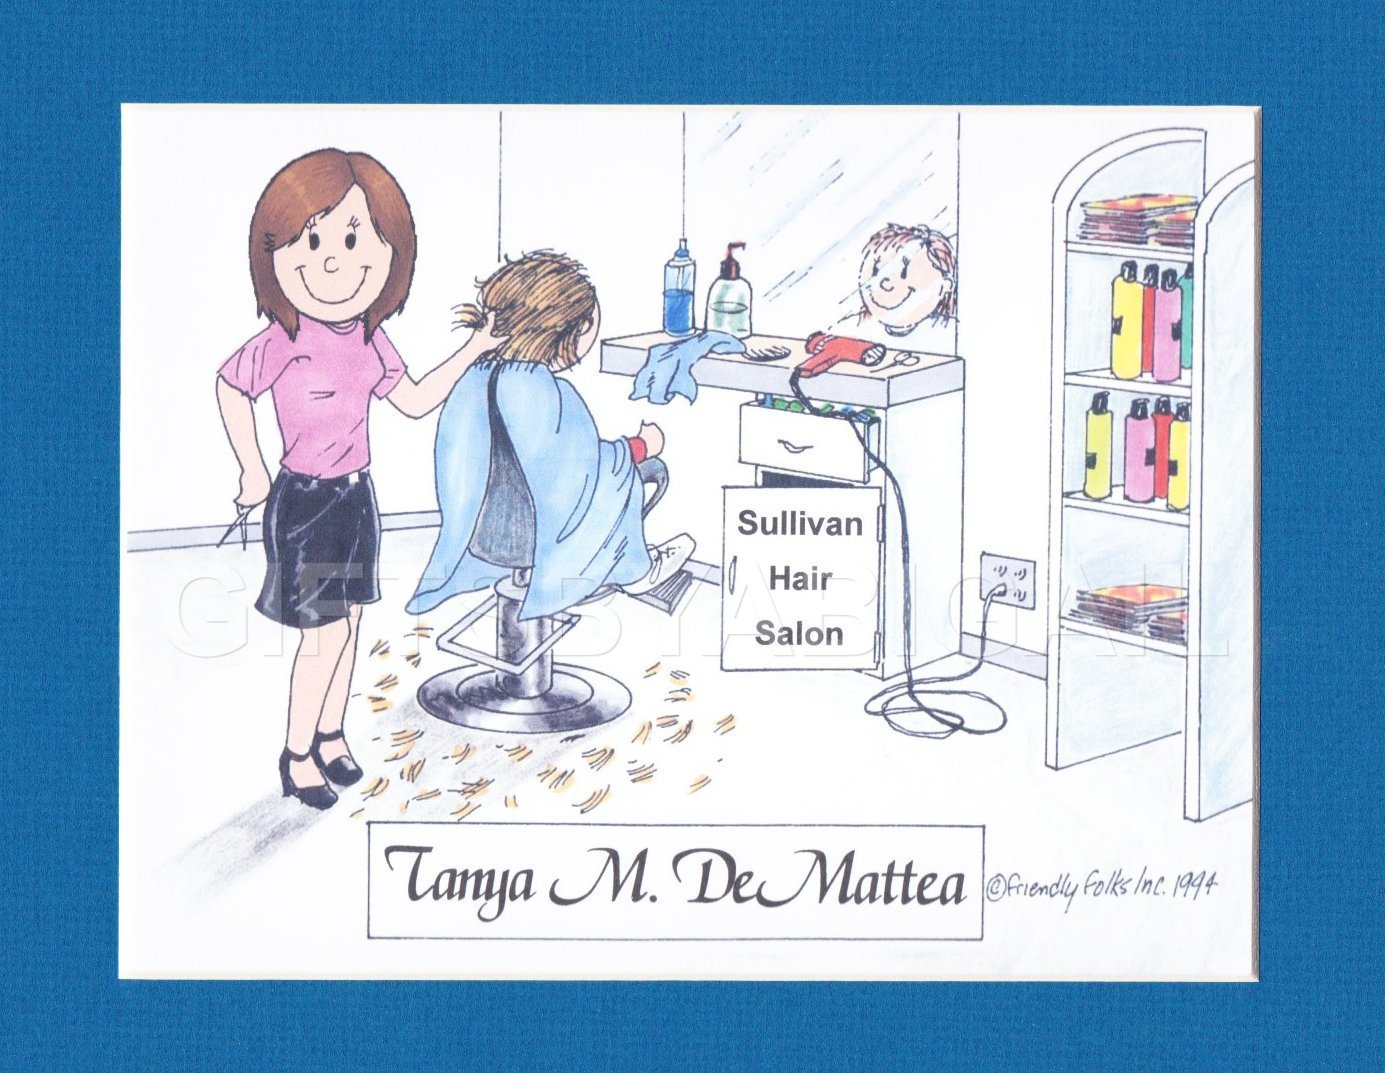 Beautician Personalized Gift Custom Cartoon Print 8x10, 9x12 Magnet or Keychain